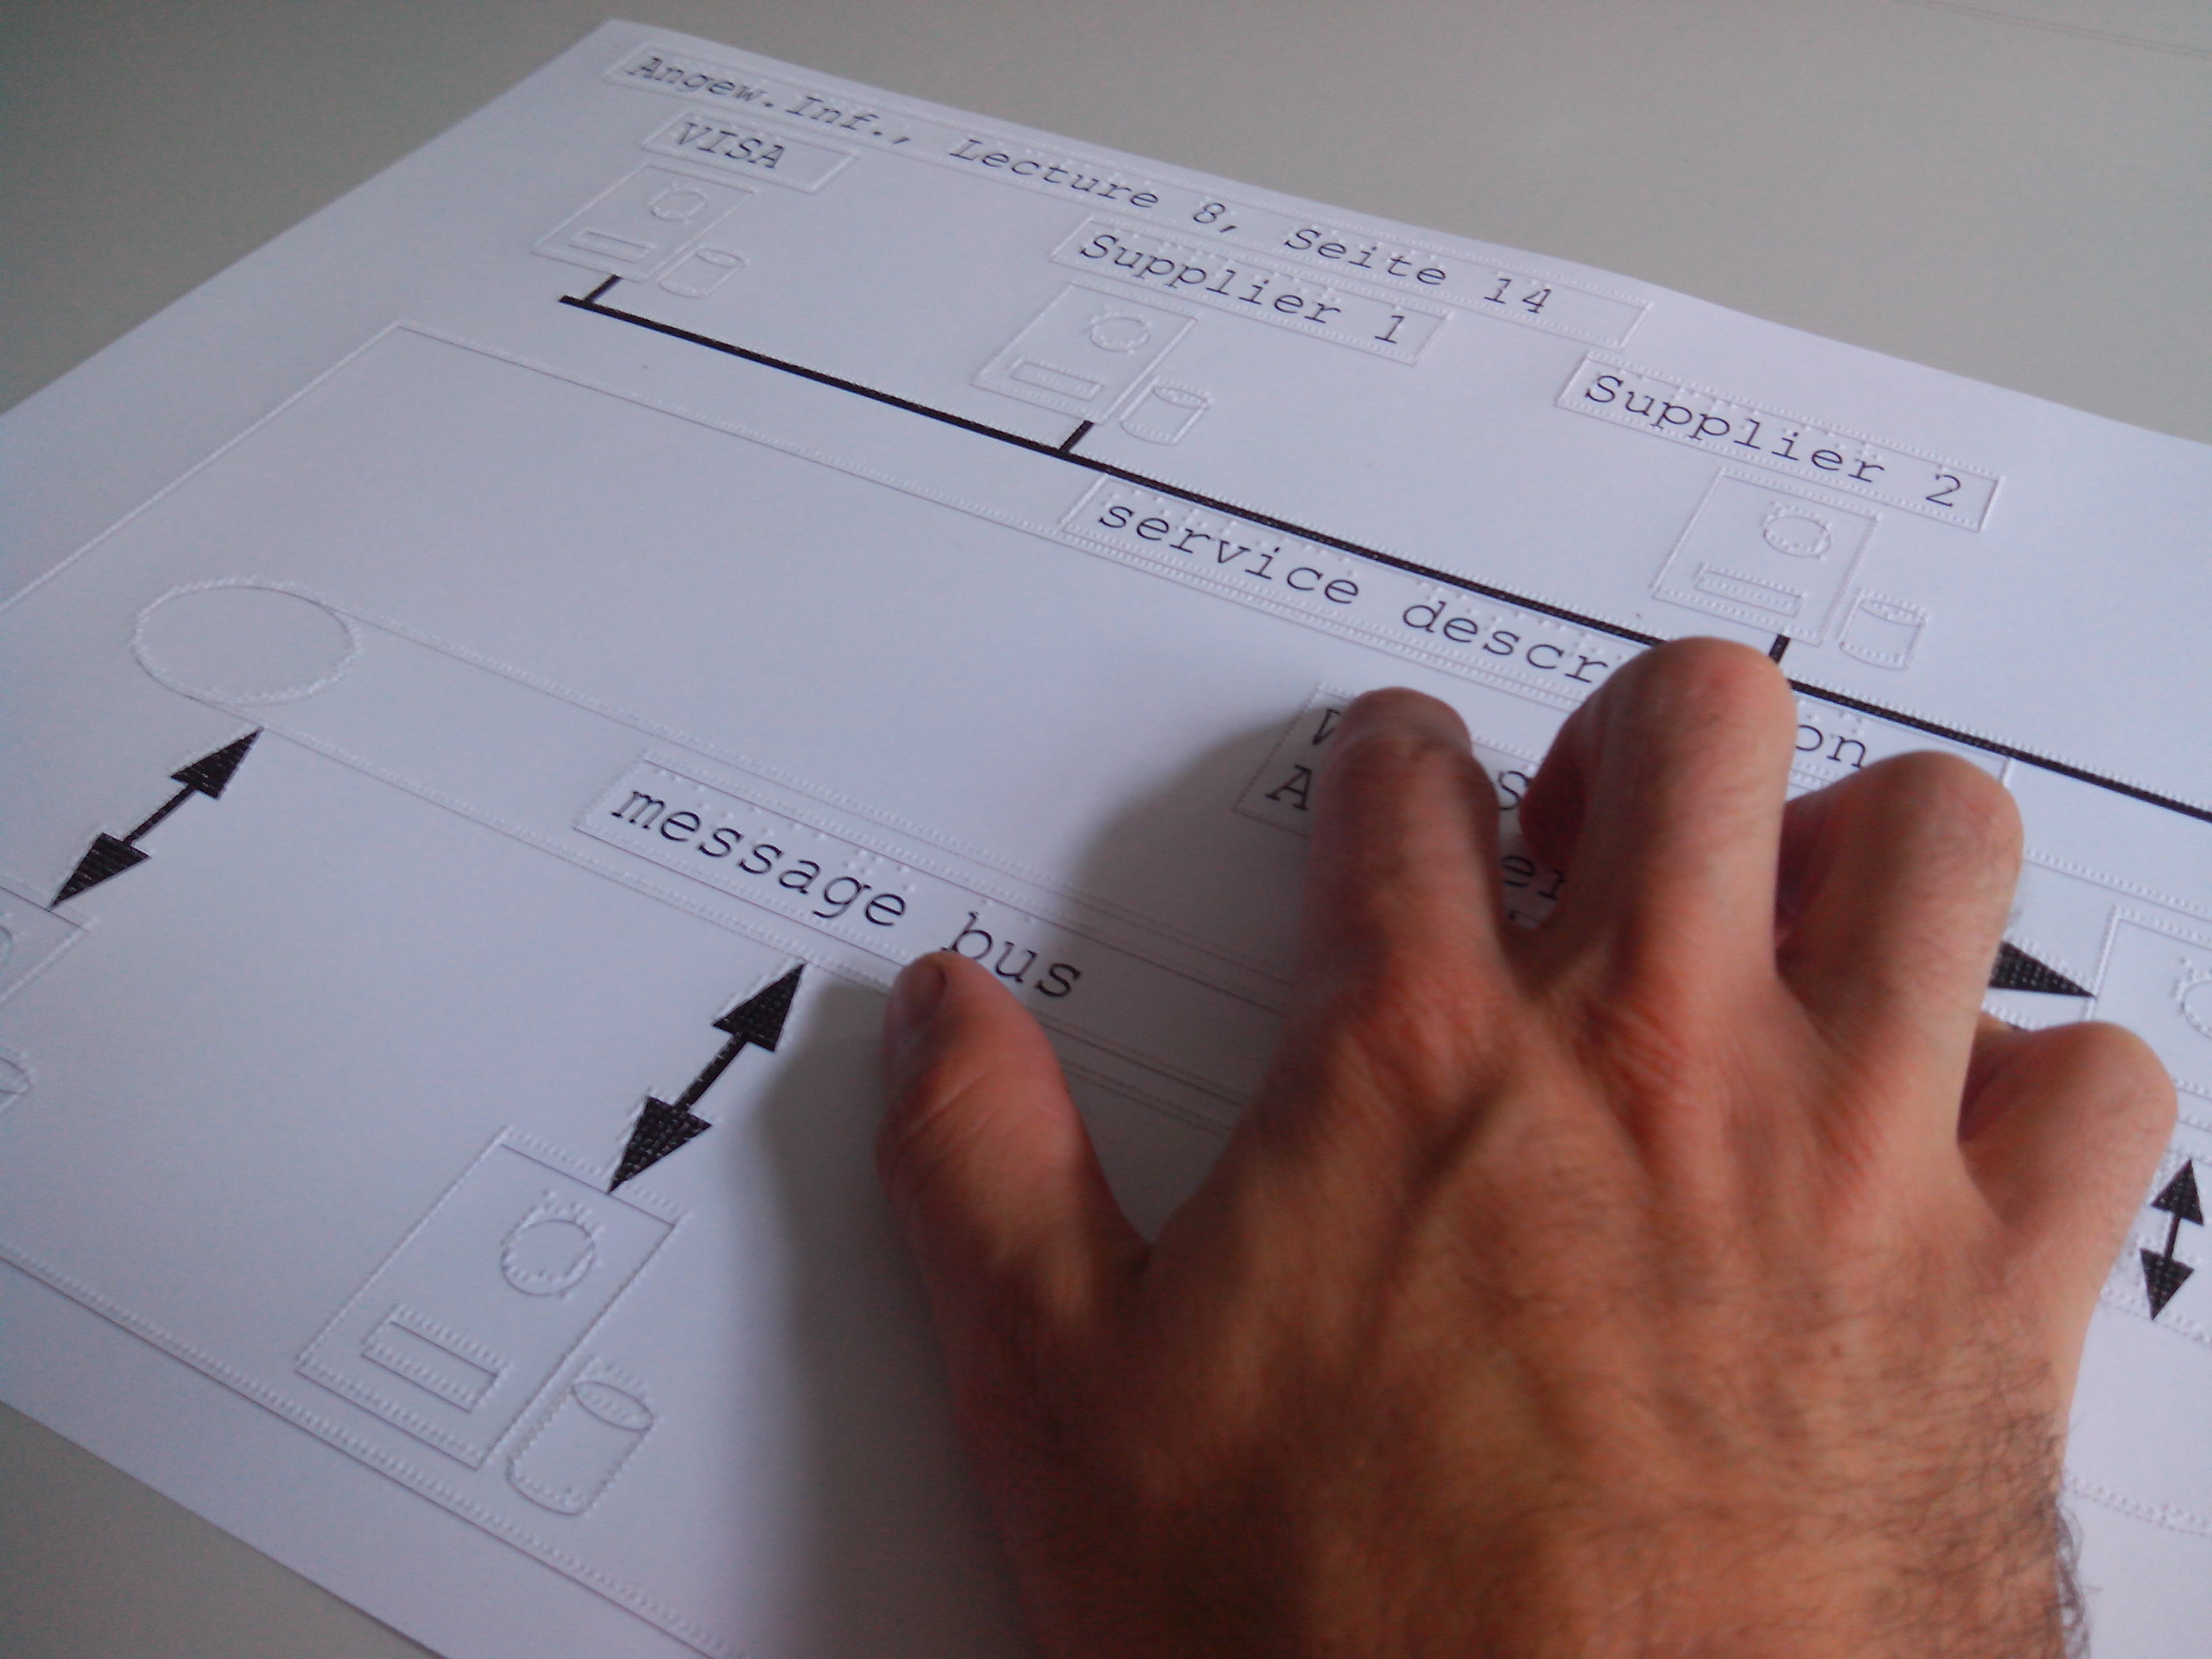 Hands reading a tactile graphic